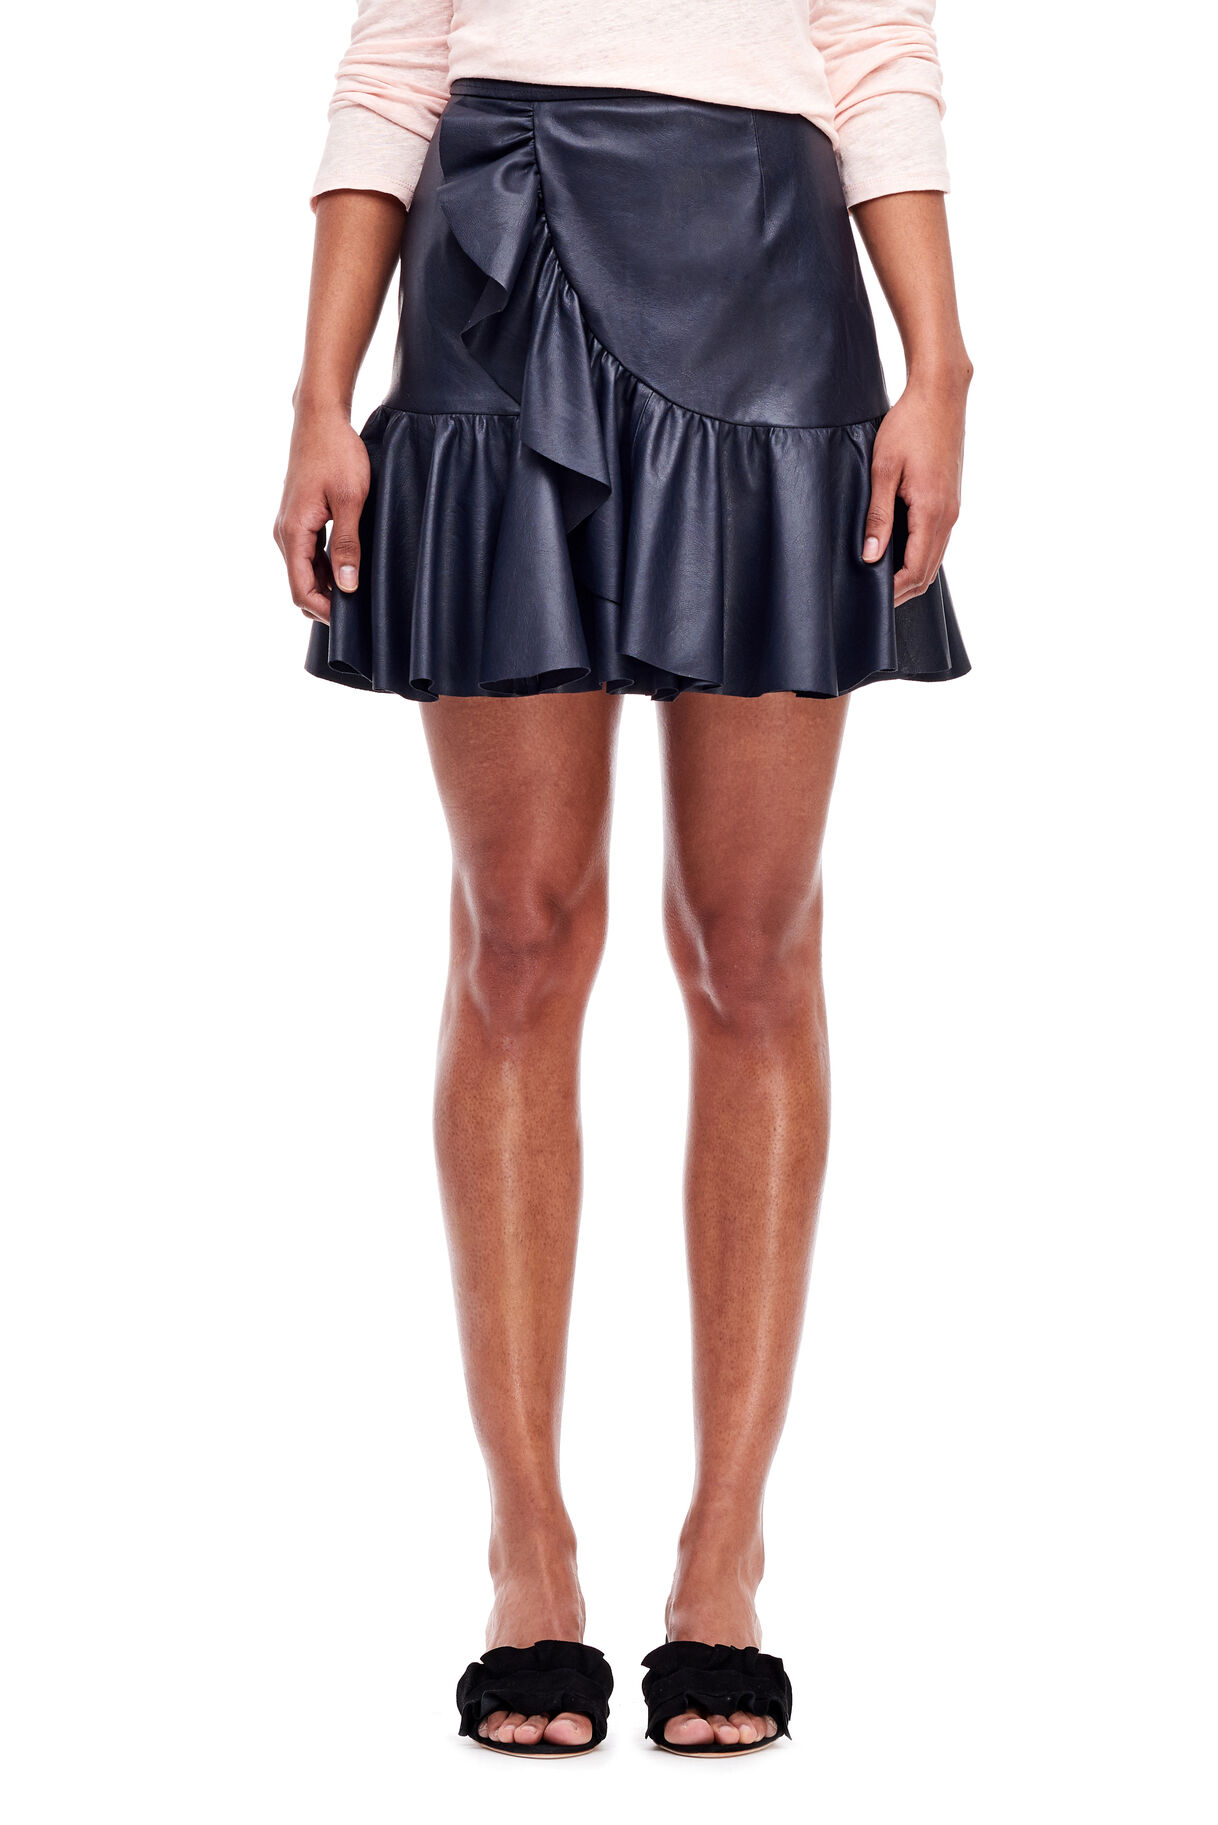 Women's skirts that are in style this season at ZARA online. FREE SHIPPING to try on at home without complications.